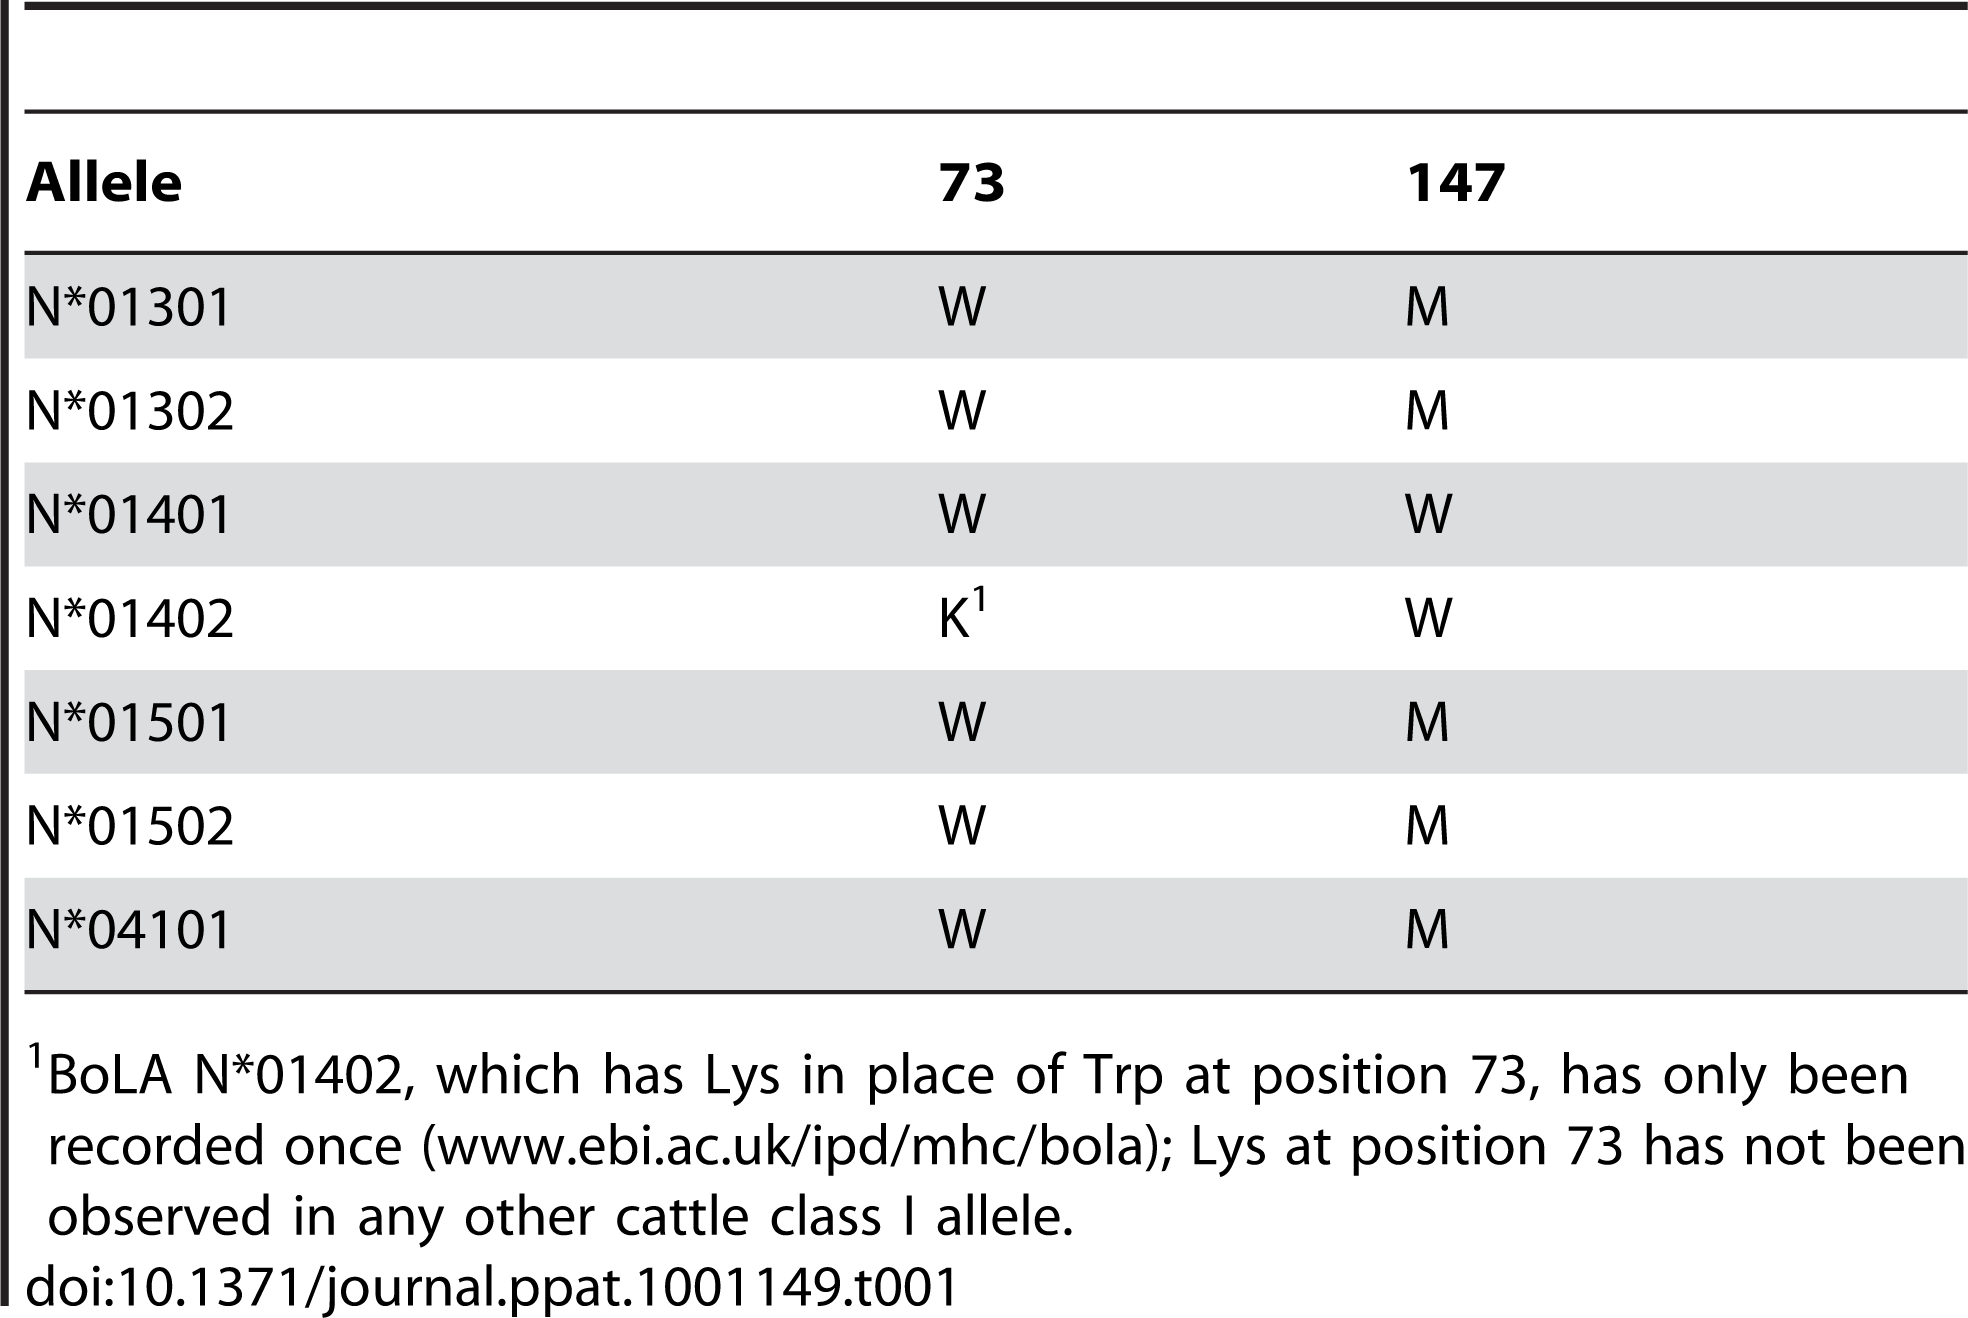 Amino acid residues at positions 73 and 147 in 7 cattle MHC class I alleles.